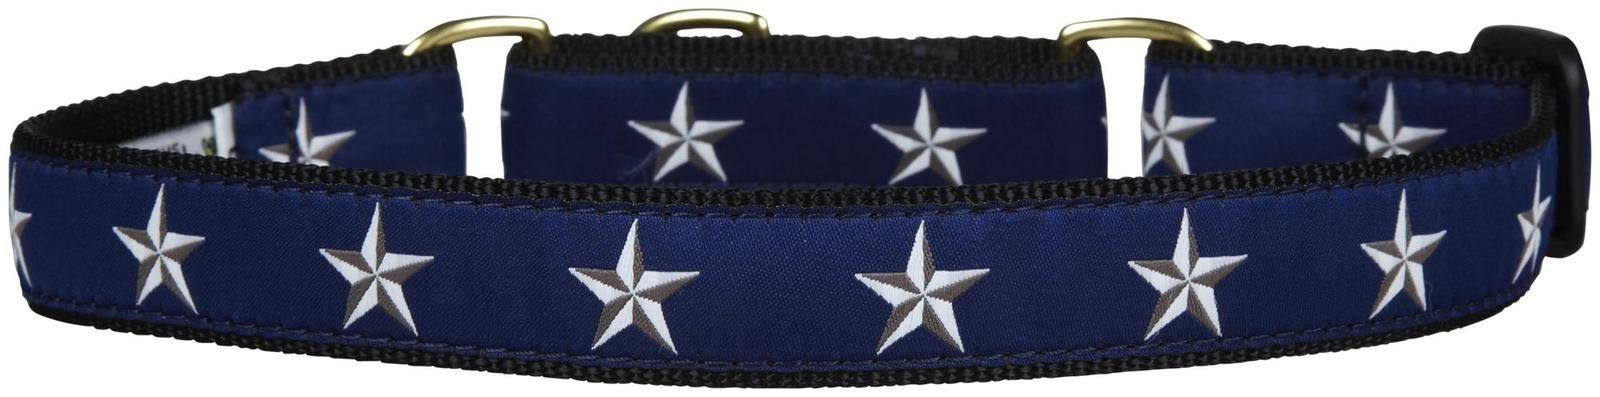 Up Country North Star Martingale Dog Collar - Medium